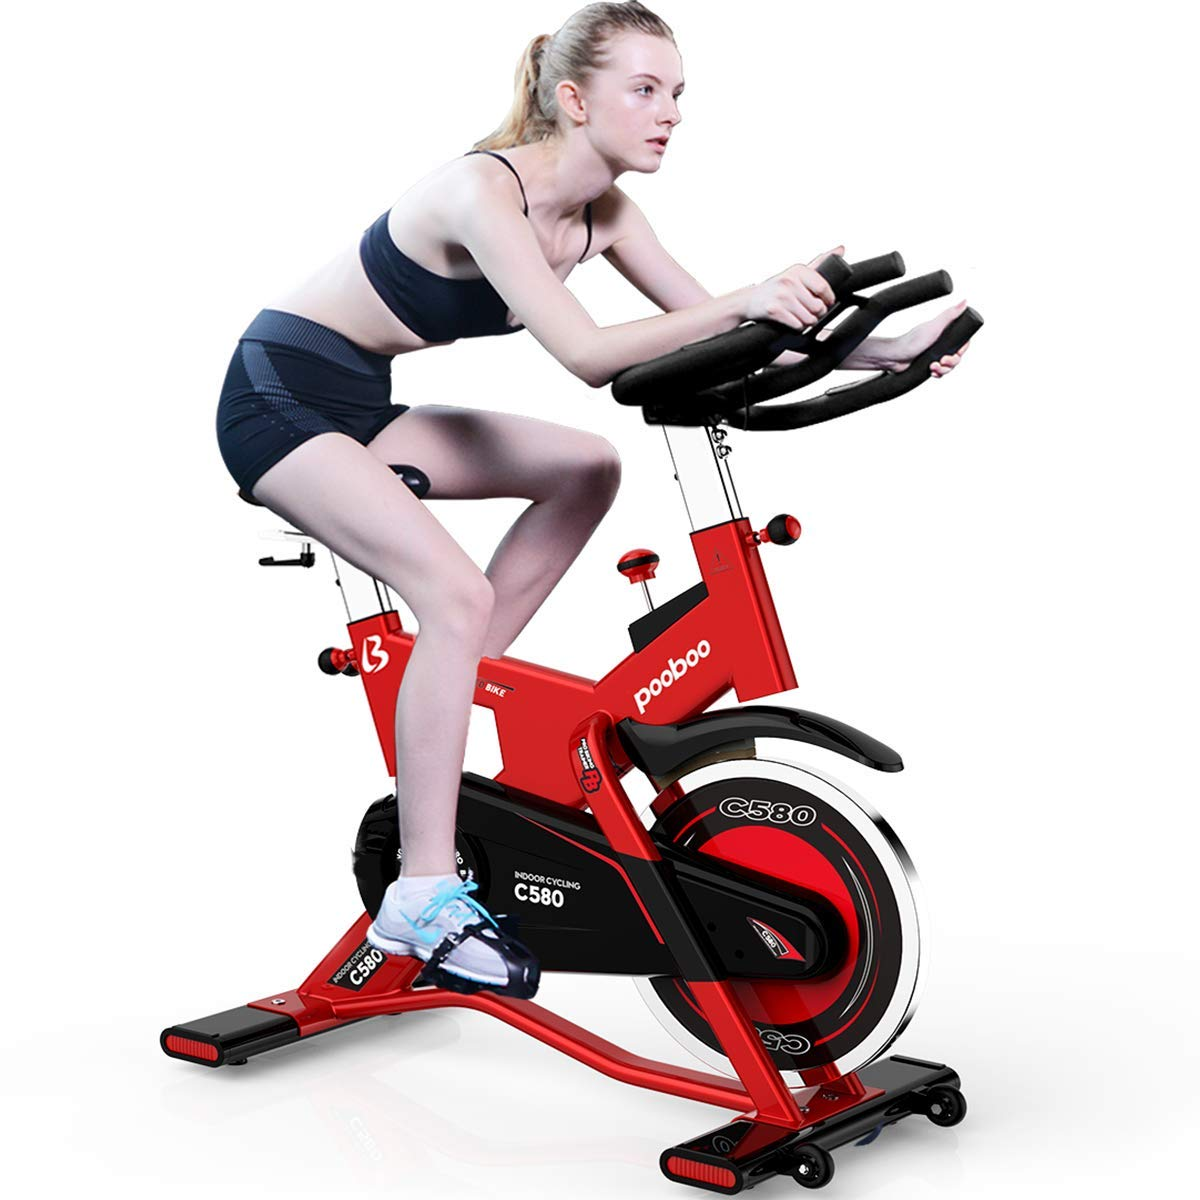 L Now C580 Pro Indoor Cycling Bike Smooth Belt Driven